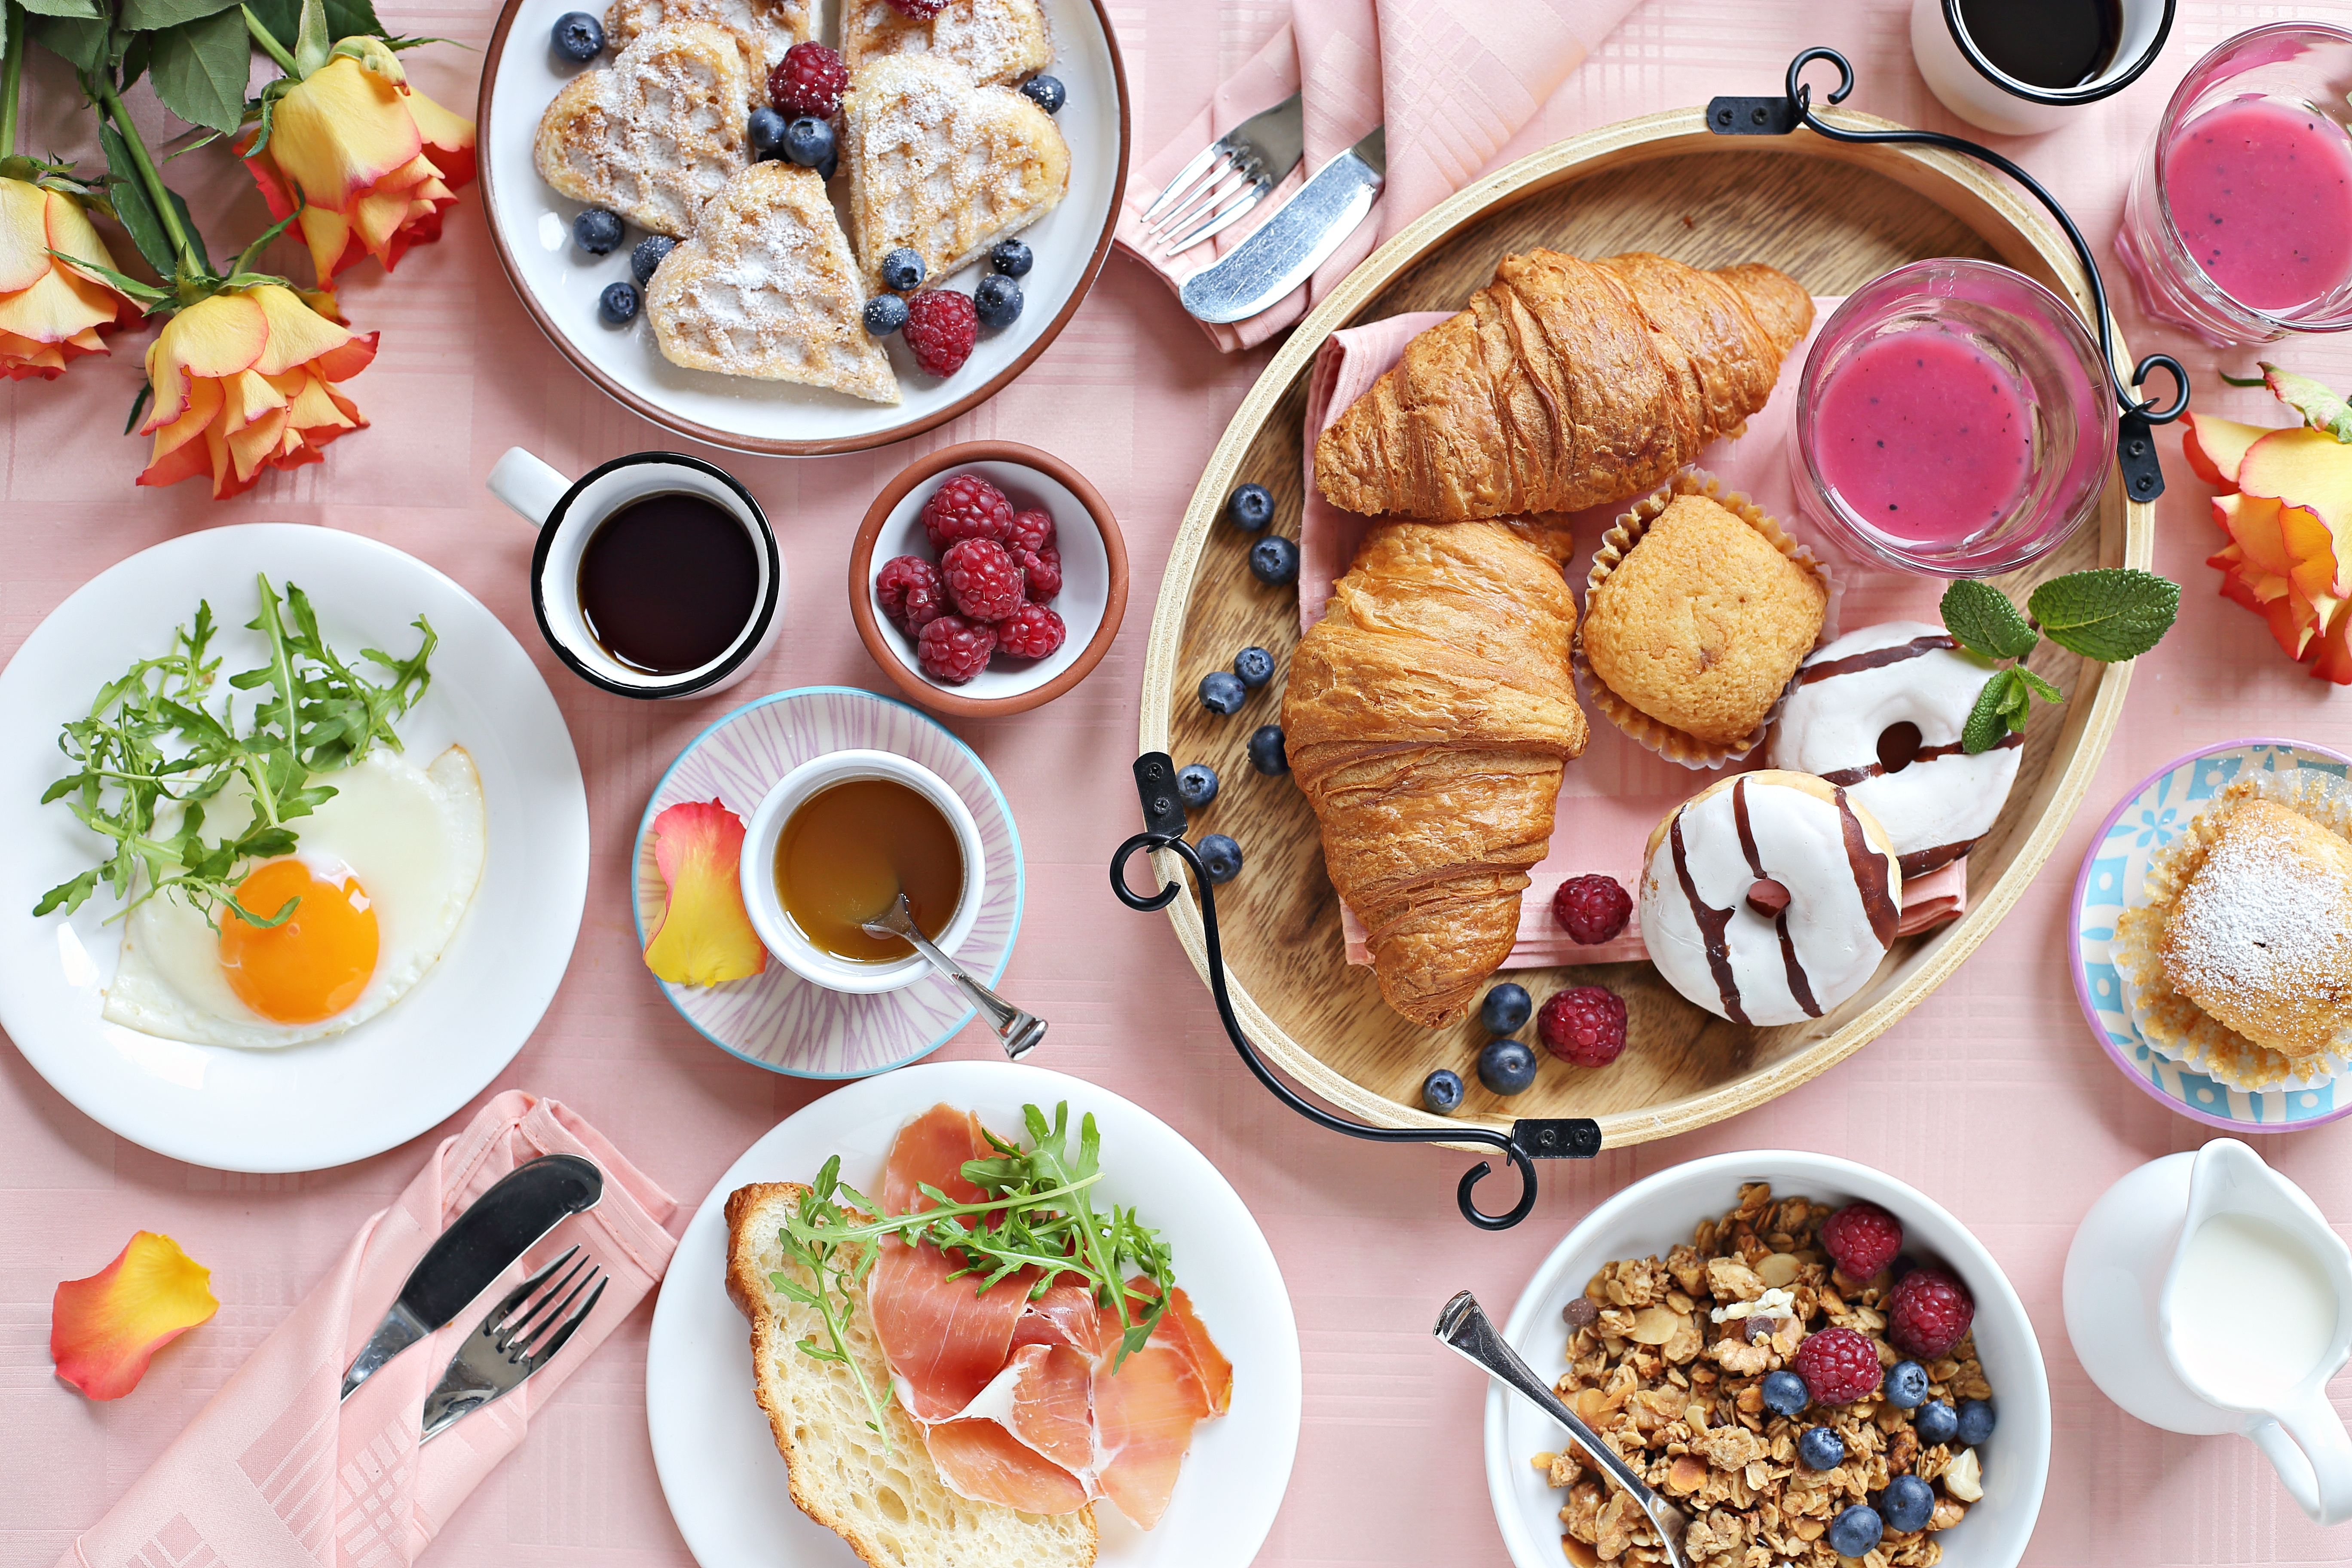 breakfasts foods on table with pink tablecloth